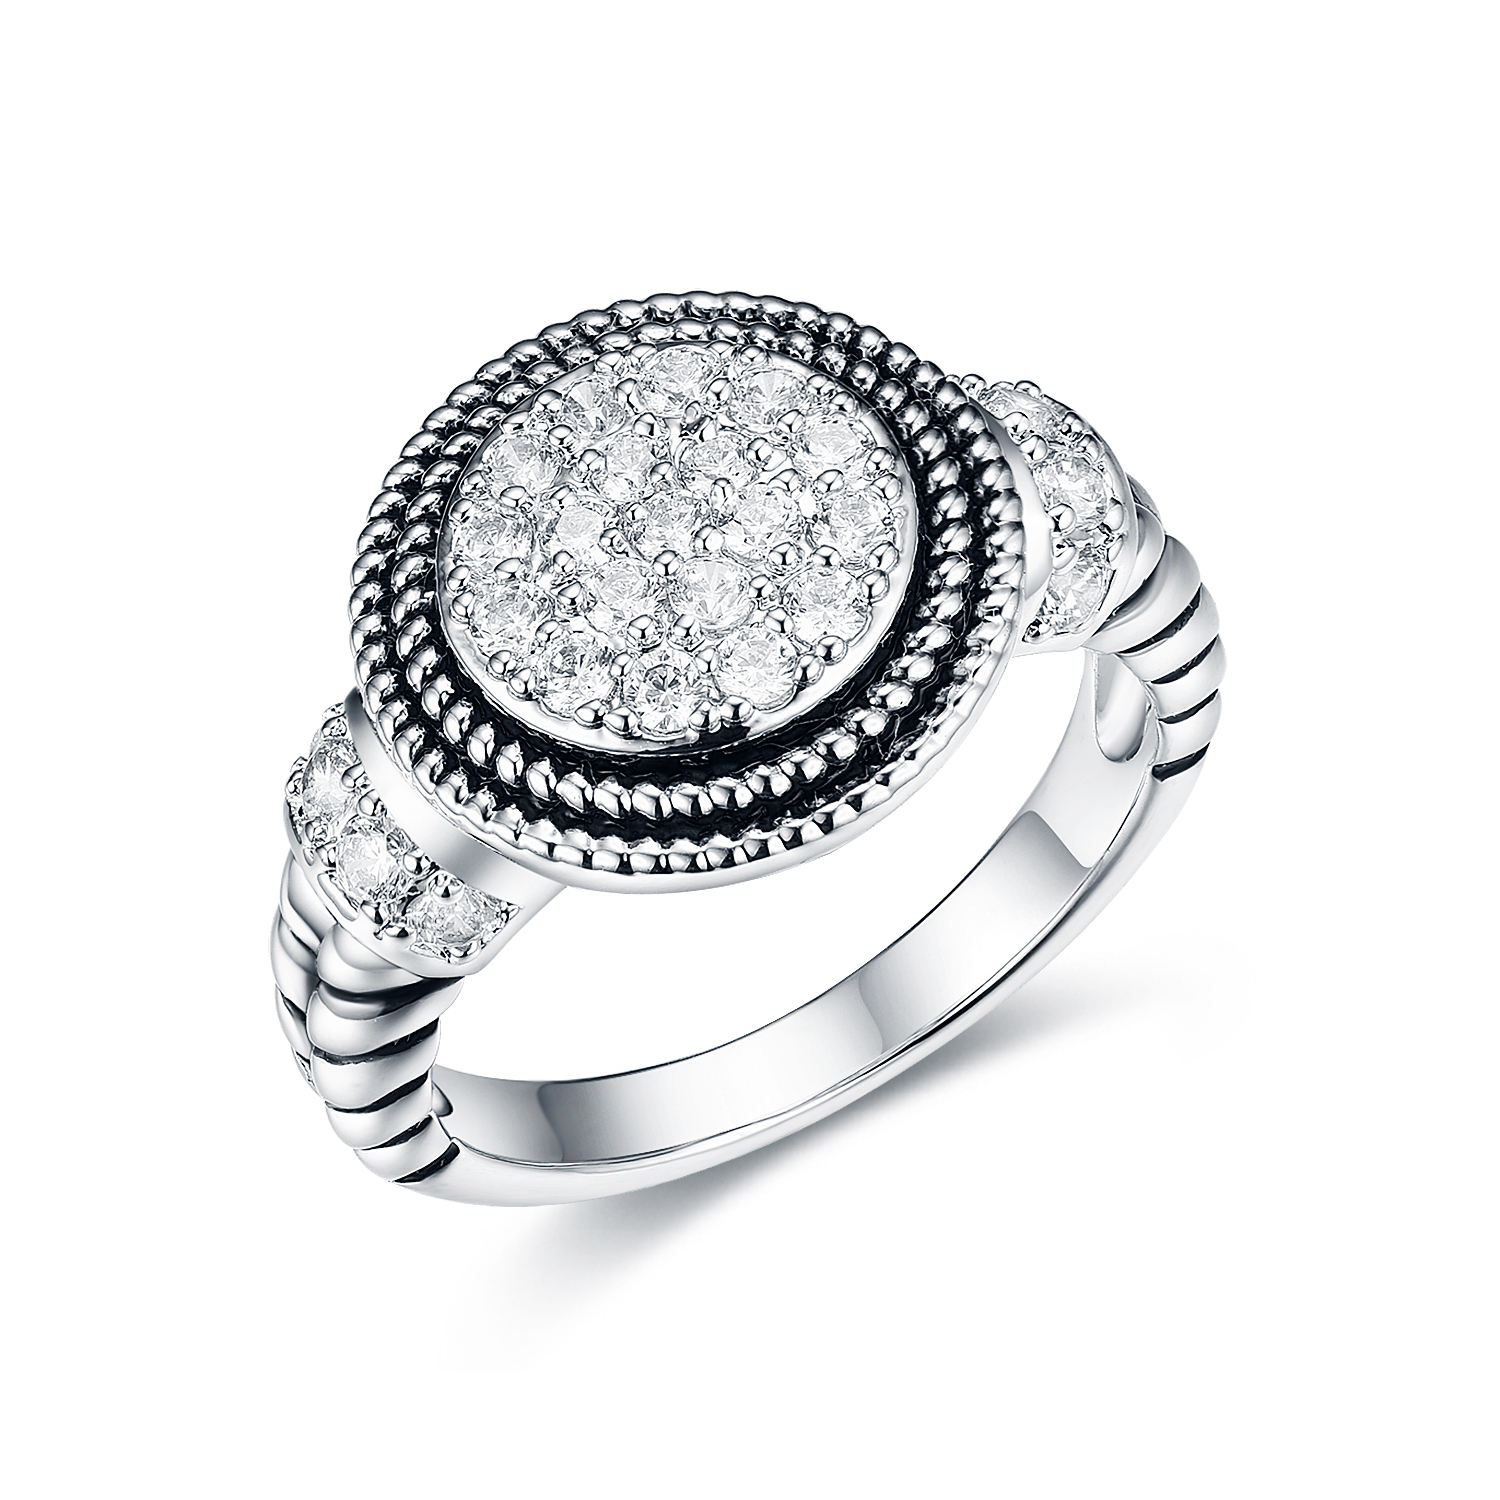 ST2680R-Designer inspired antique,Cable texture Ring with Round White Pave Cubic Zircon in Center under Rhodium plated from China Top Jewelry vendor